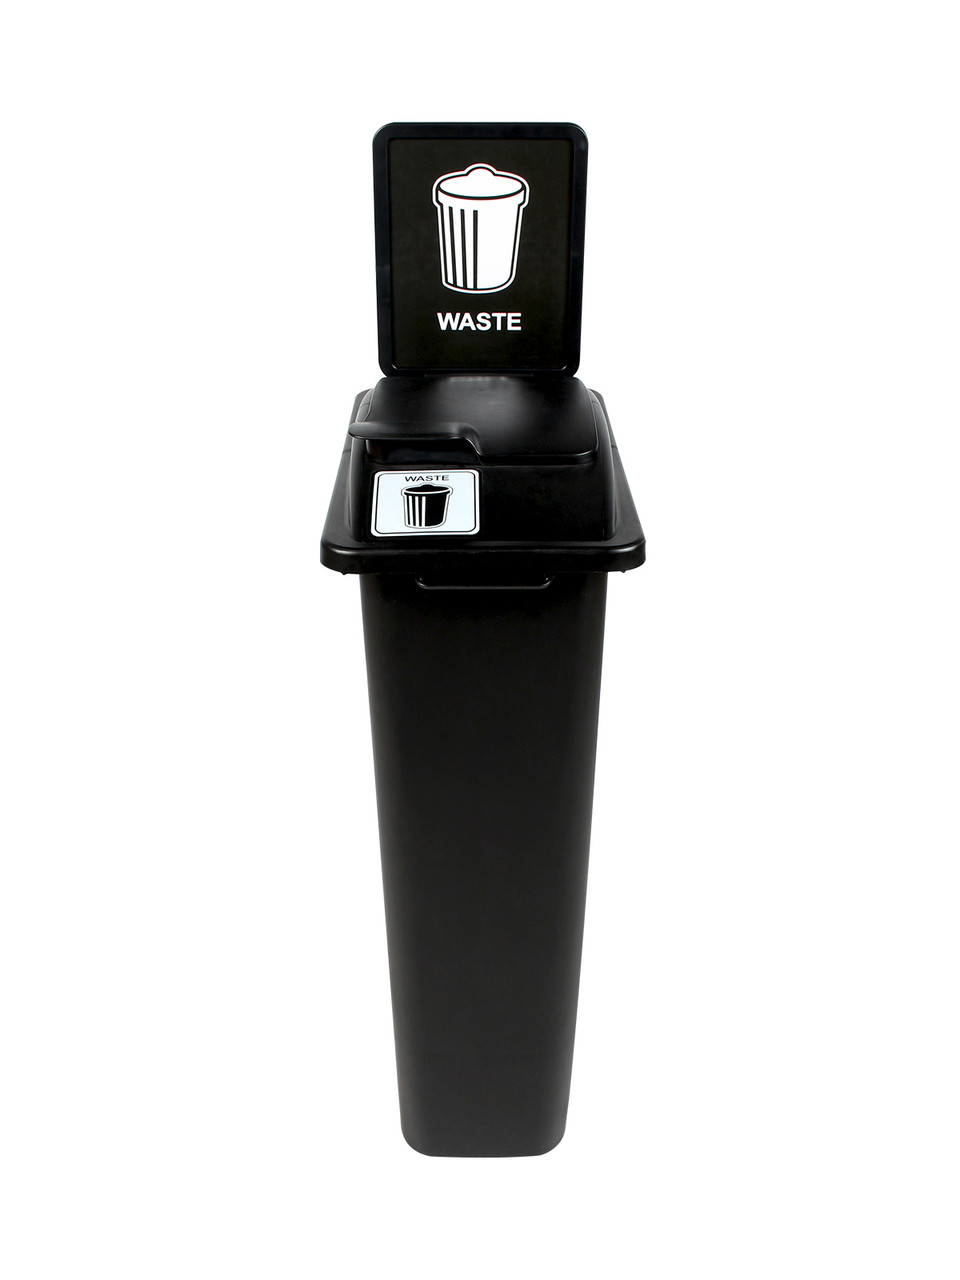 23 Gallon Black Skinny Simple Sort Waste Can with Sign Lift Top